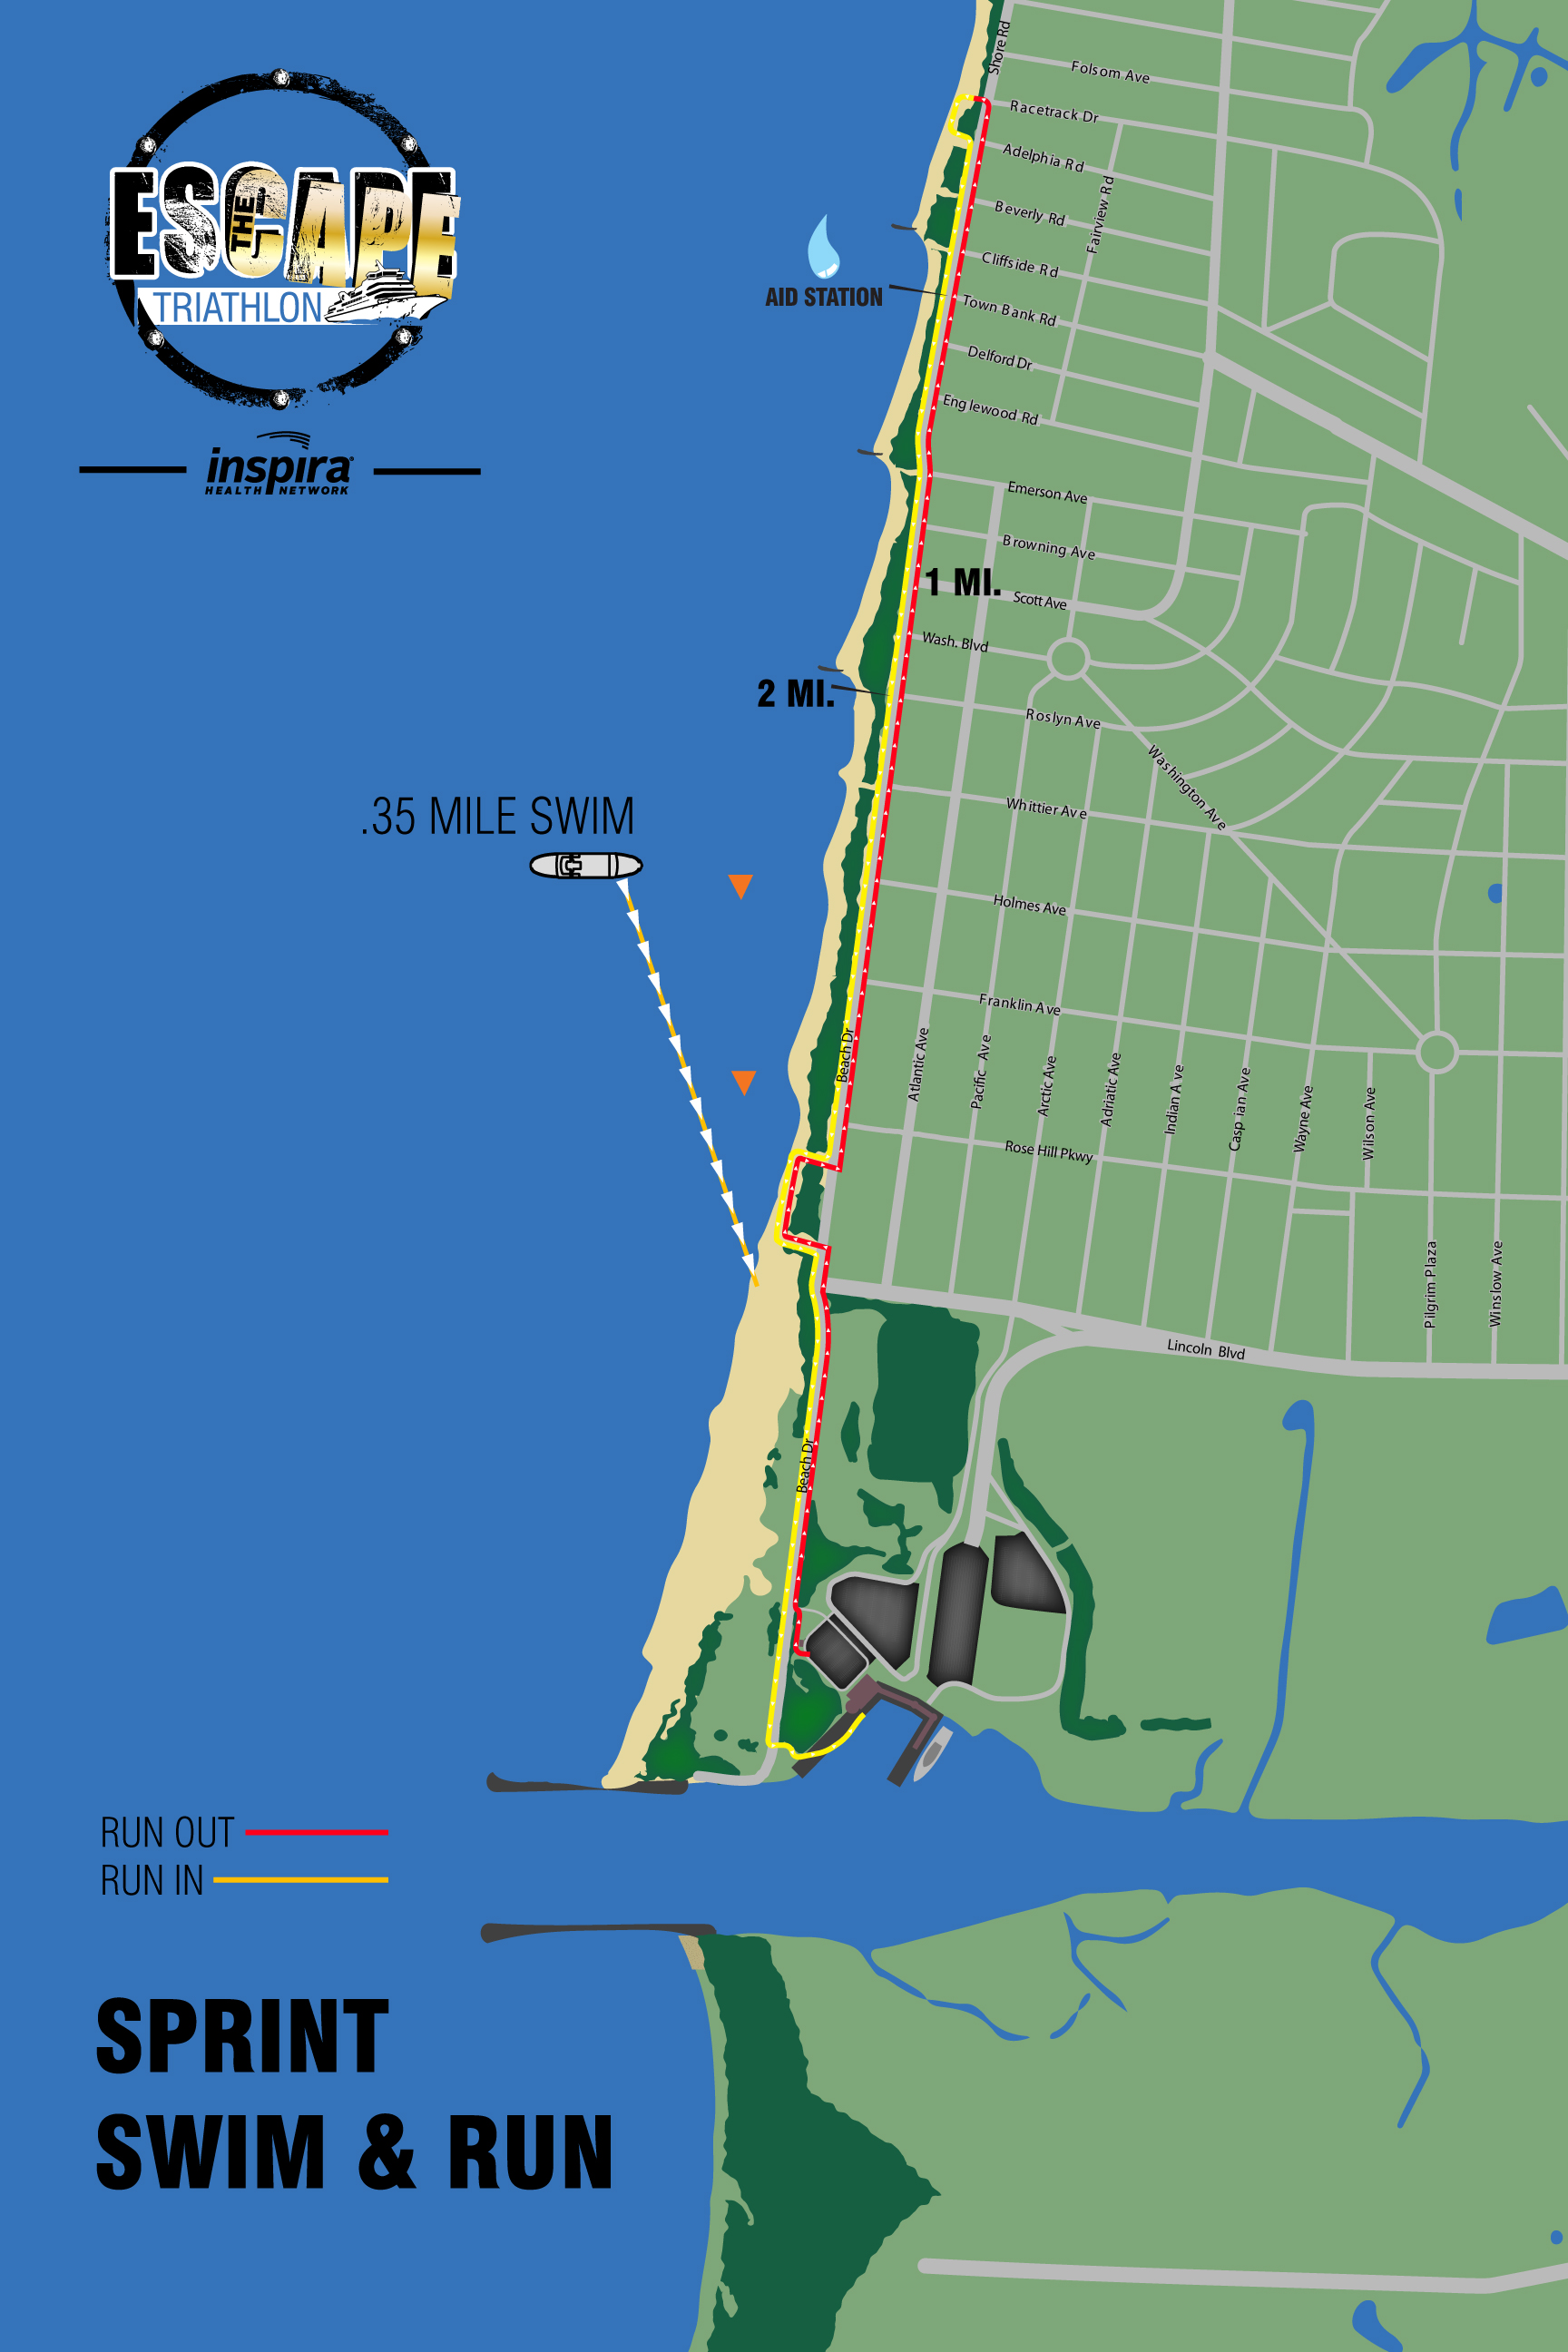 Swim & Run Course Map (Sprint Triathlon)